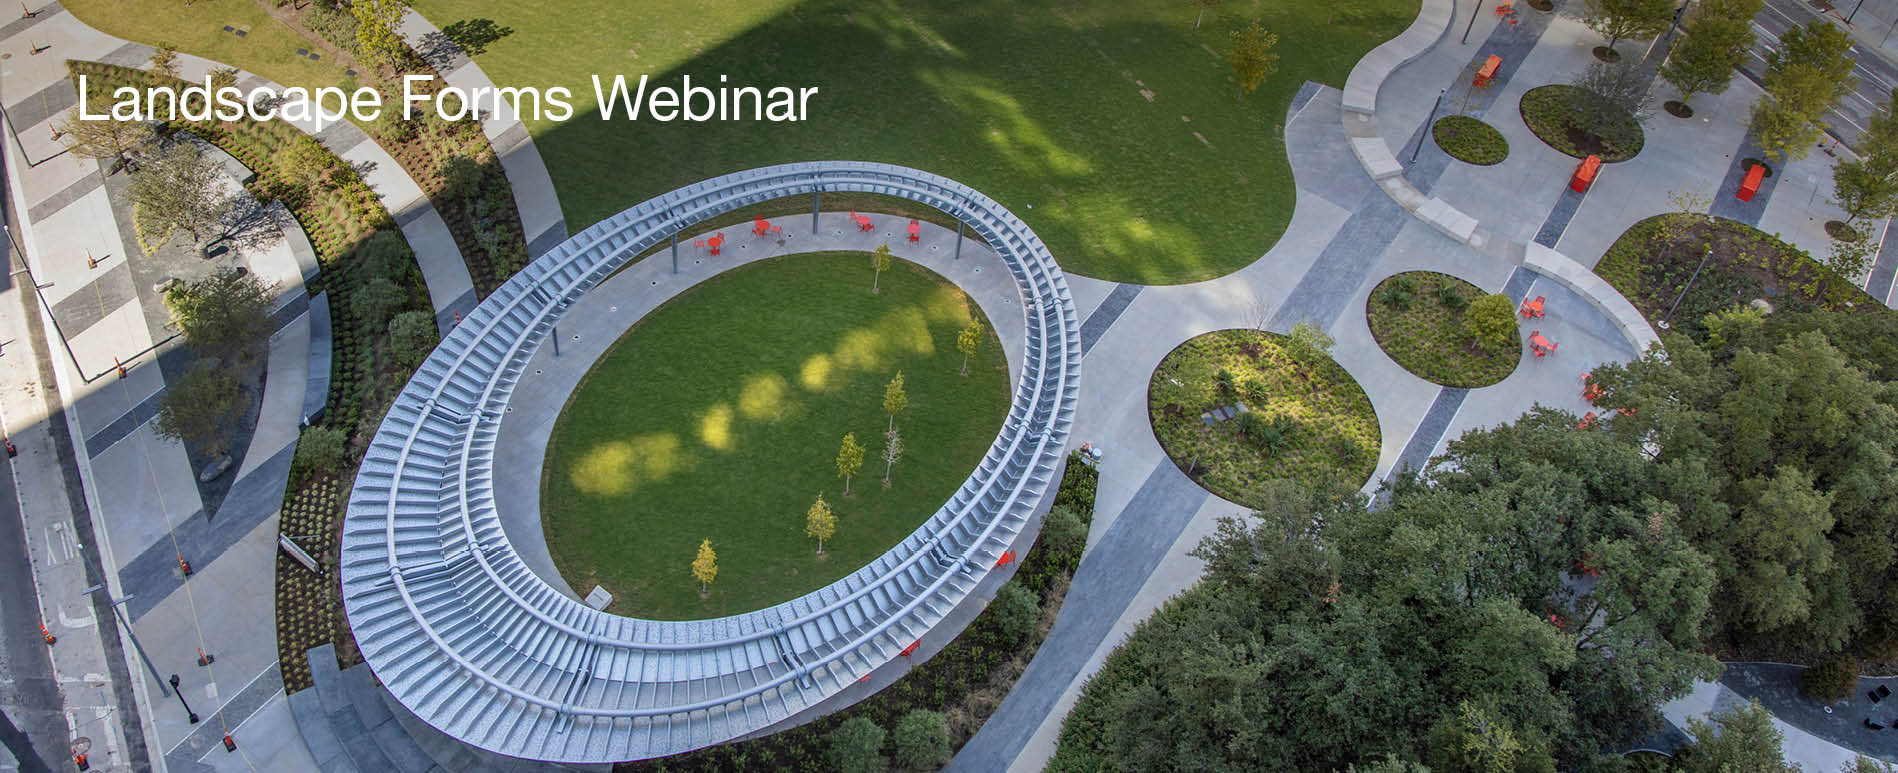 Landscape Architects Respond to Seismic Shifts - Webinar